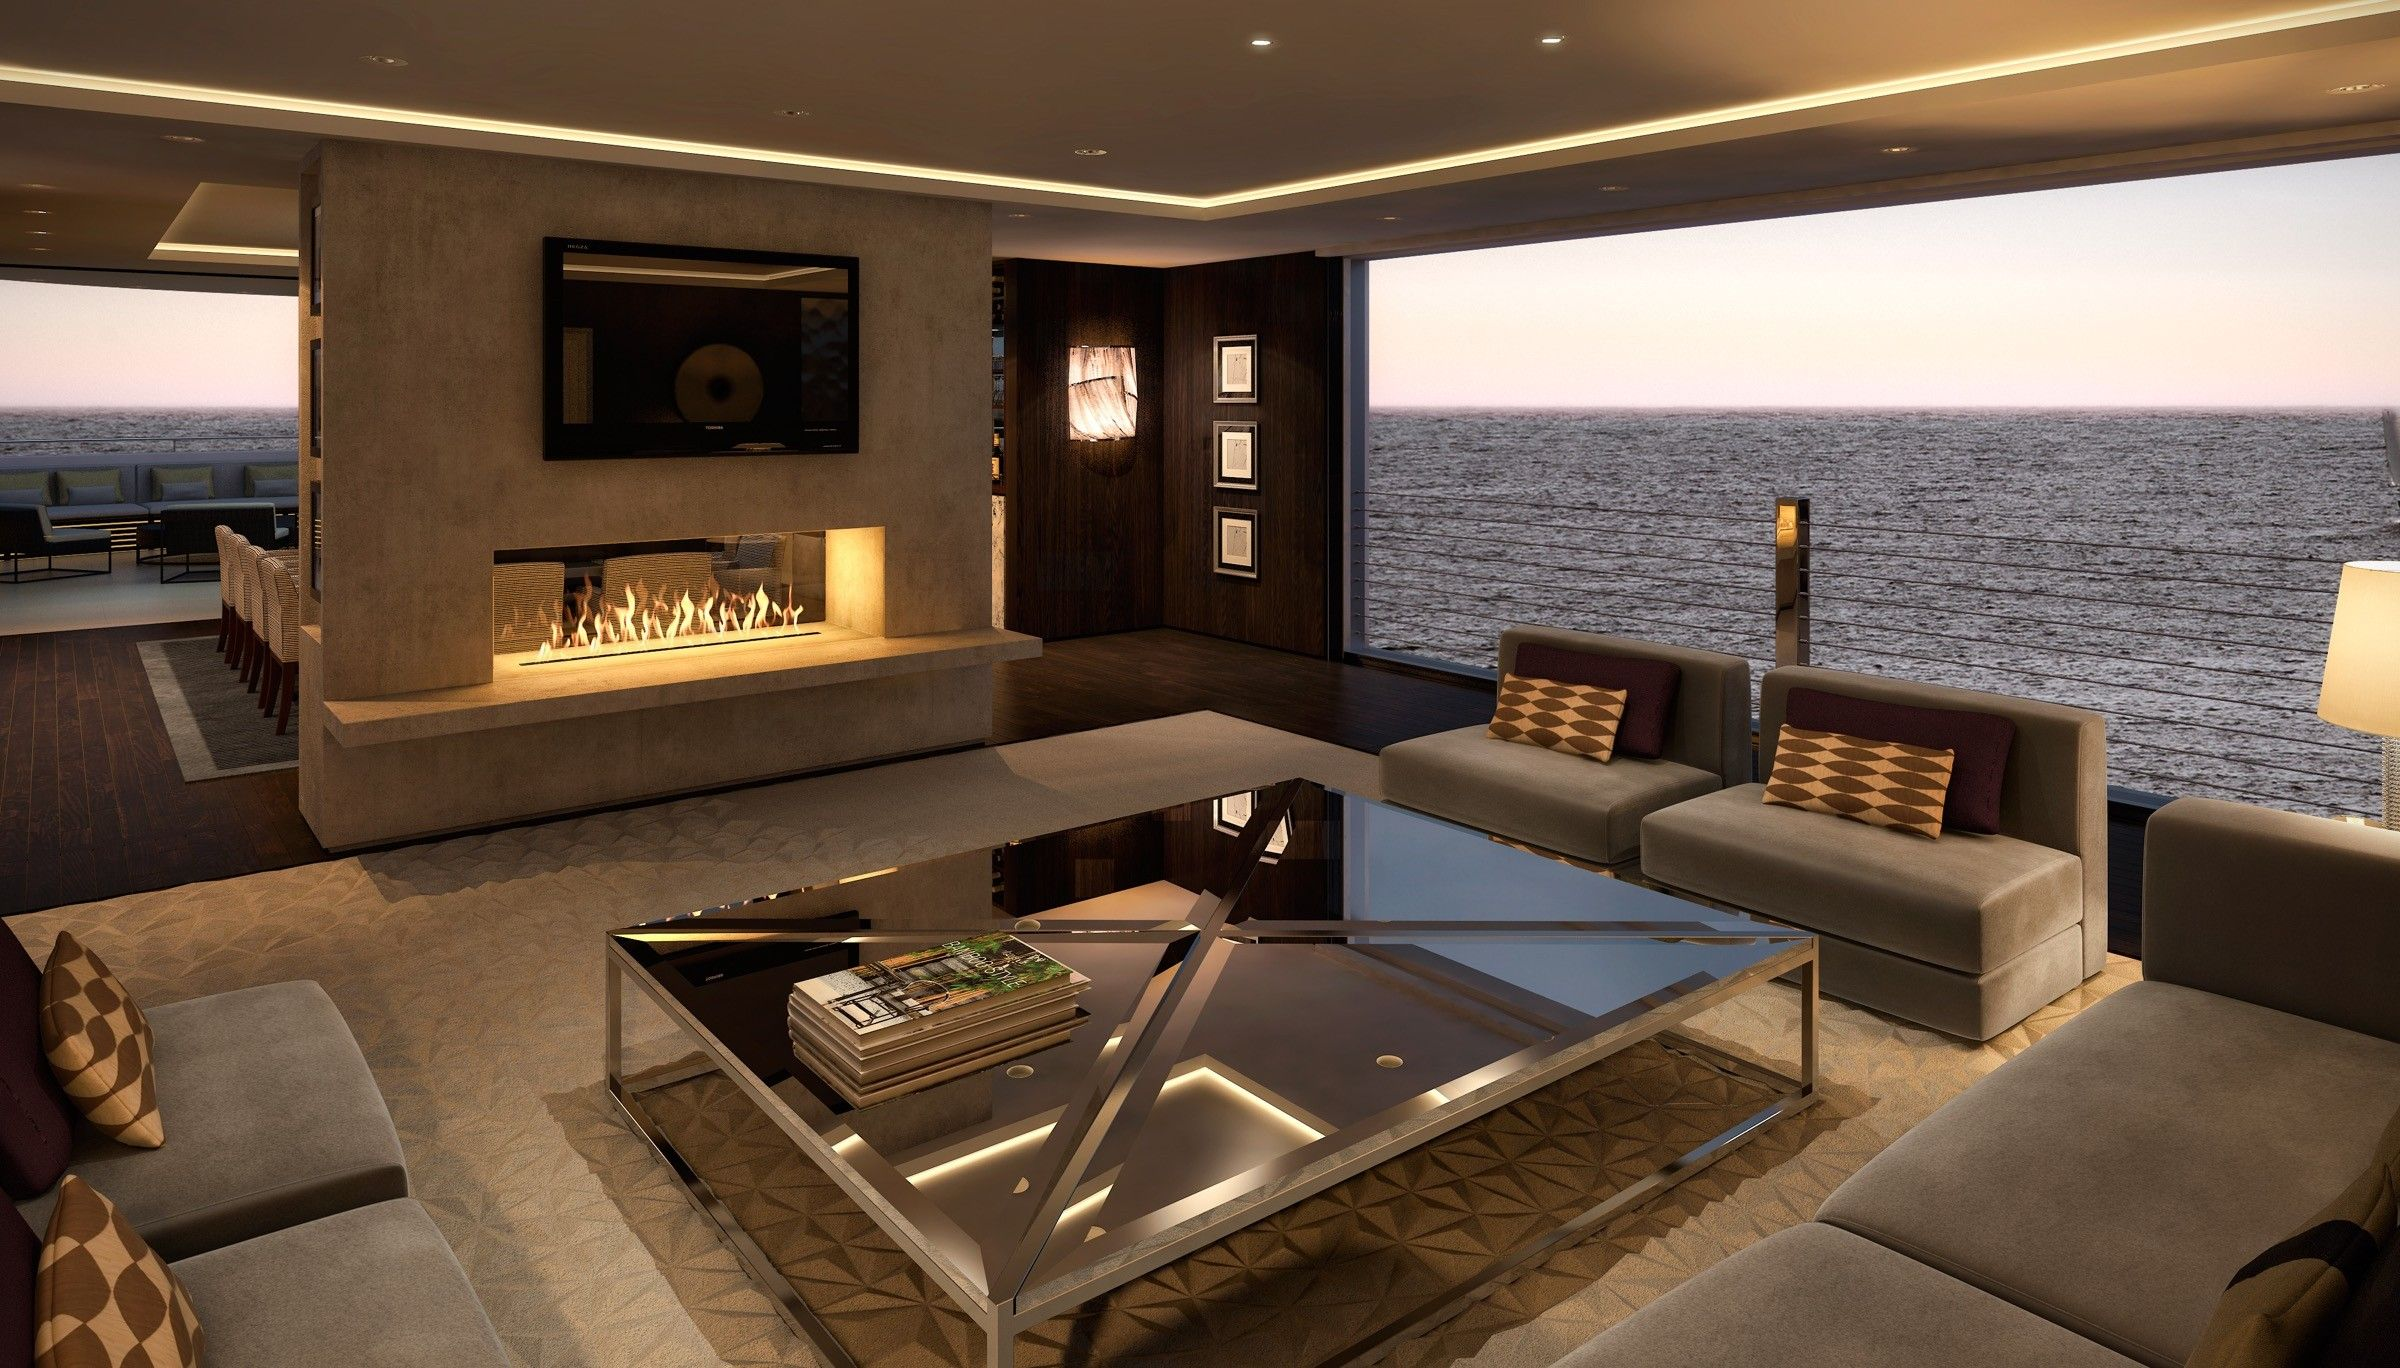 Luxury Interior Design: Lawson Robb Also Excels As Private Yacht Interior